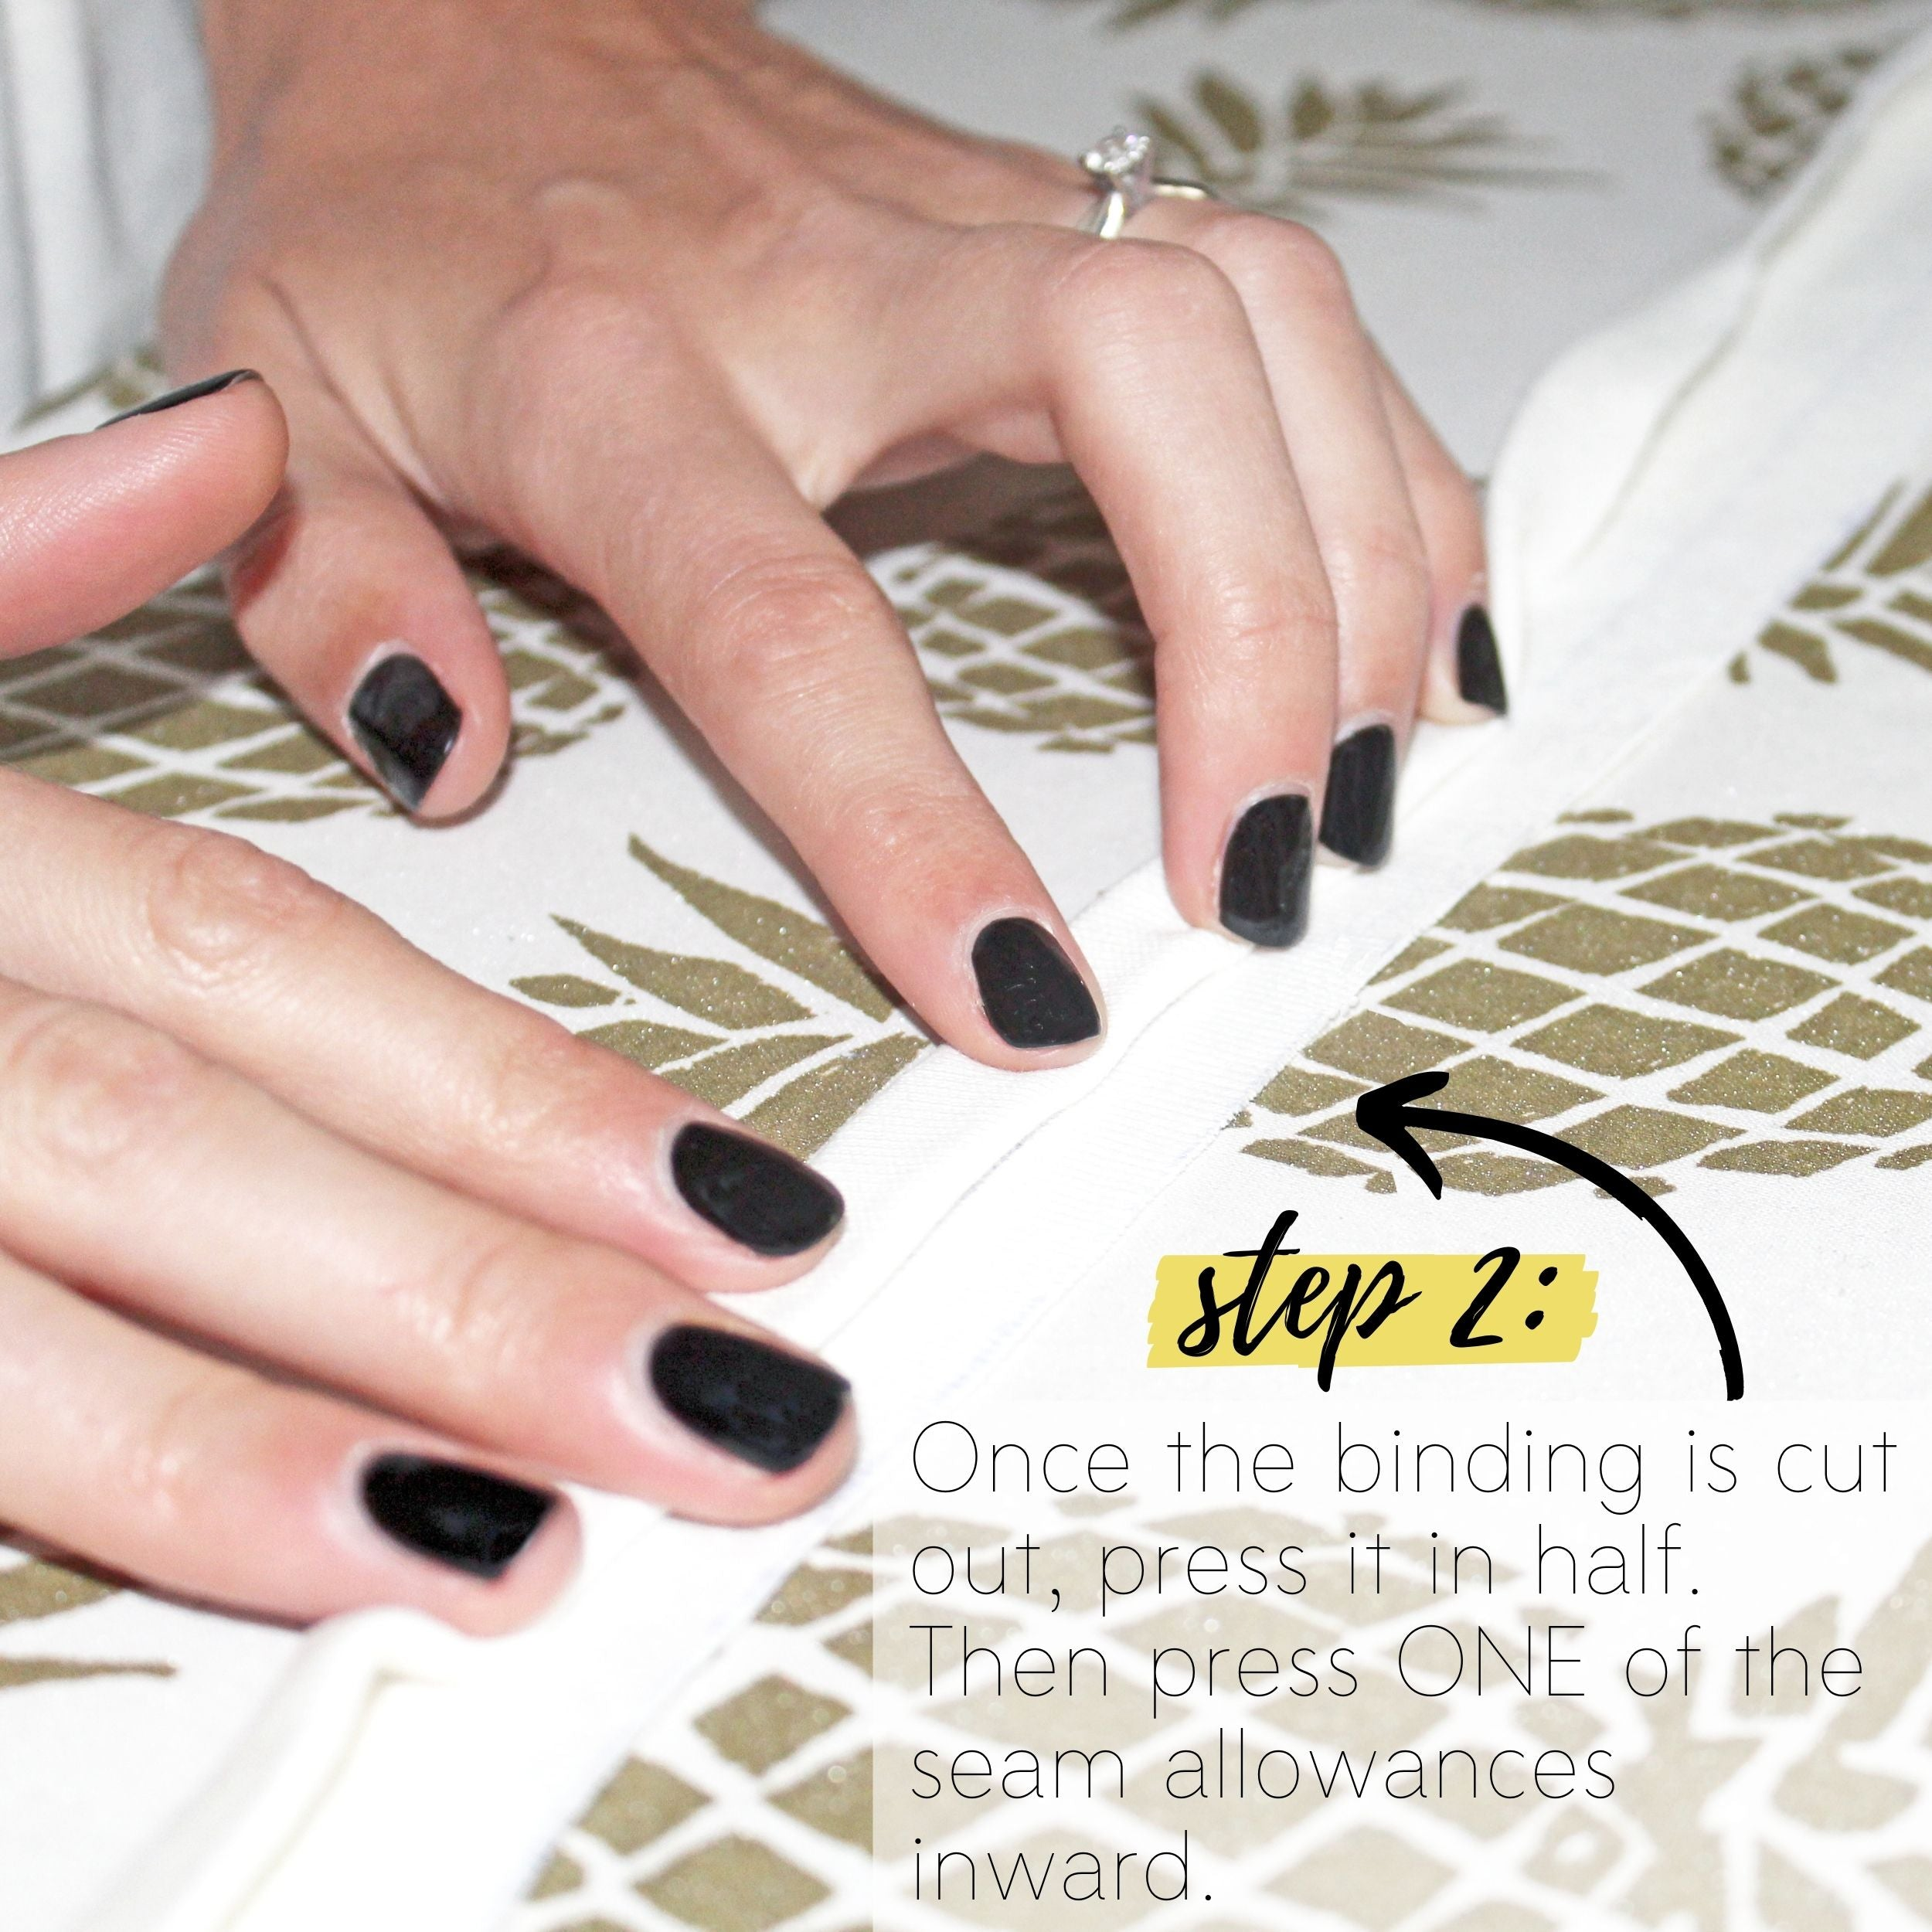 How To Sew A Knit Seam Binding Sewing Tutorial: Step 2